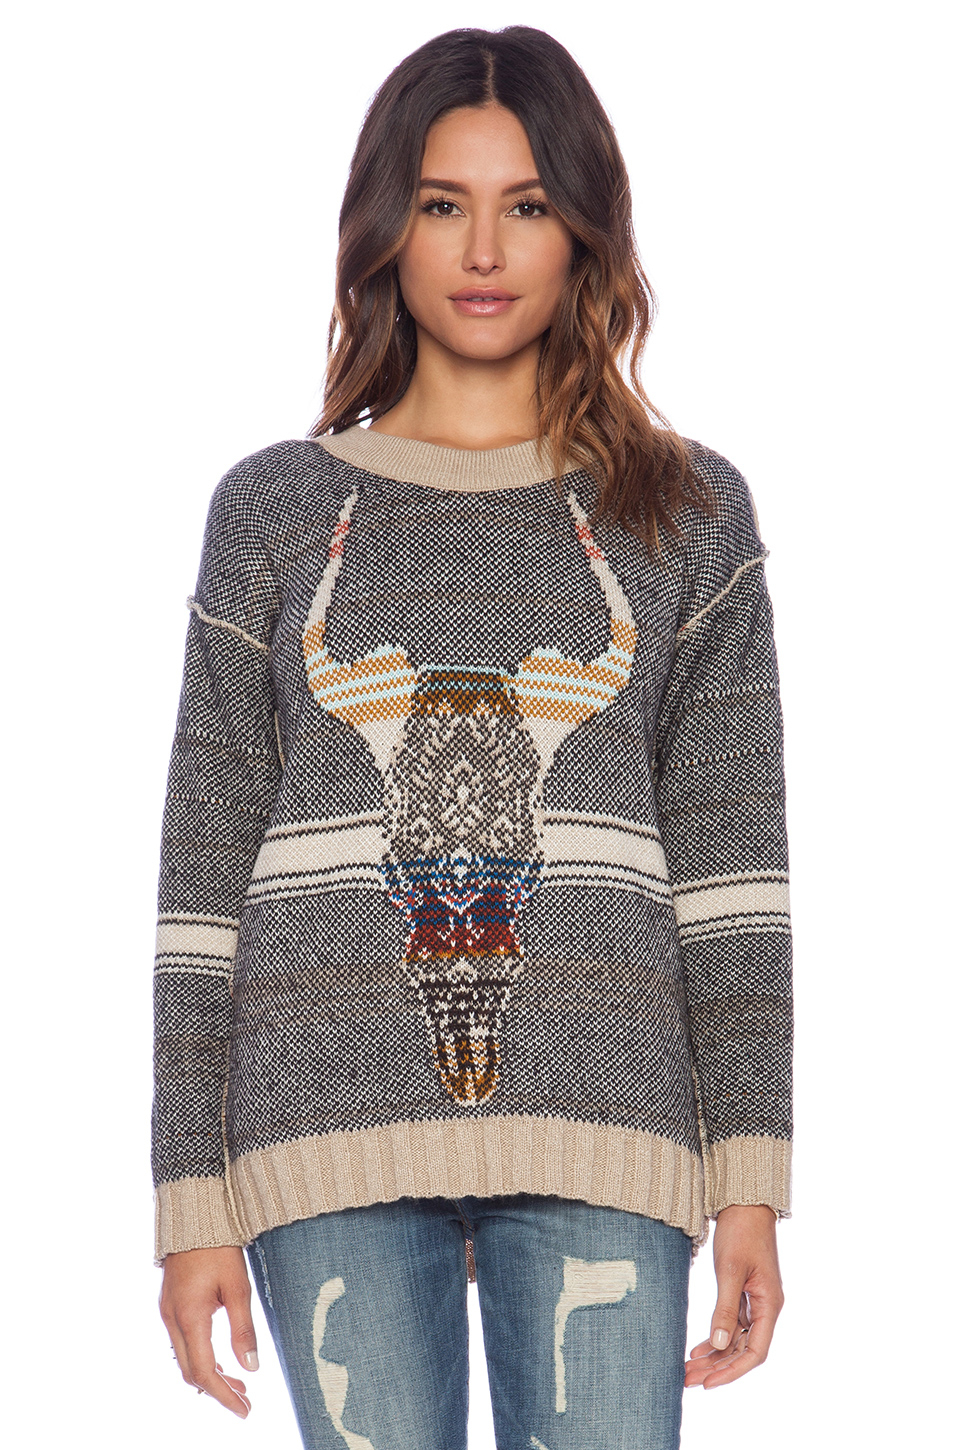 Jen S Pirate Booty Desert Queen Sweater In Natural Lyst